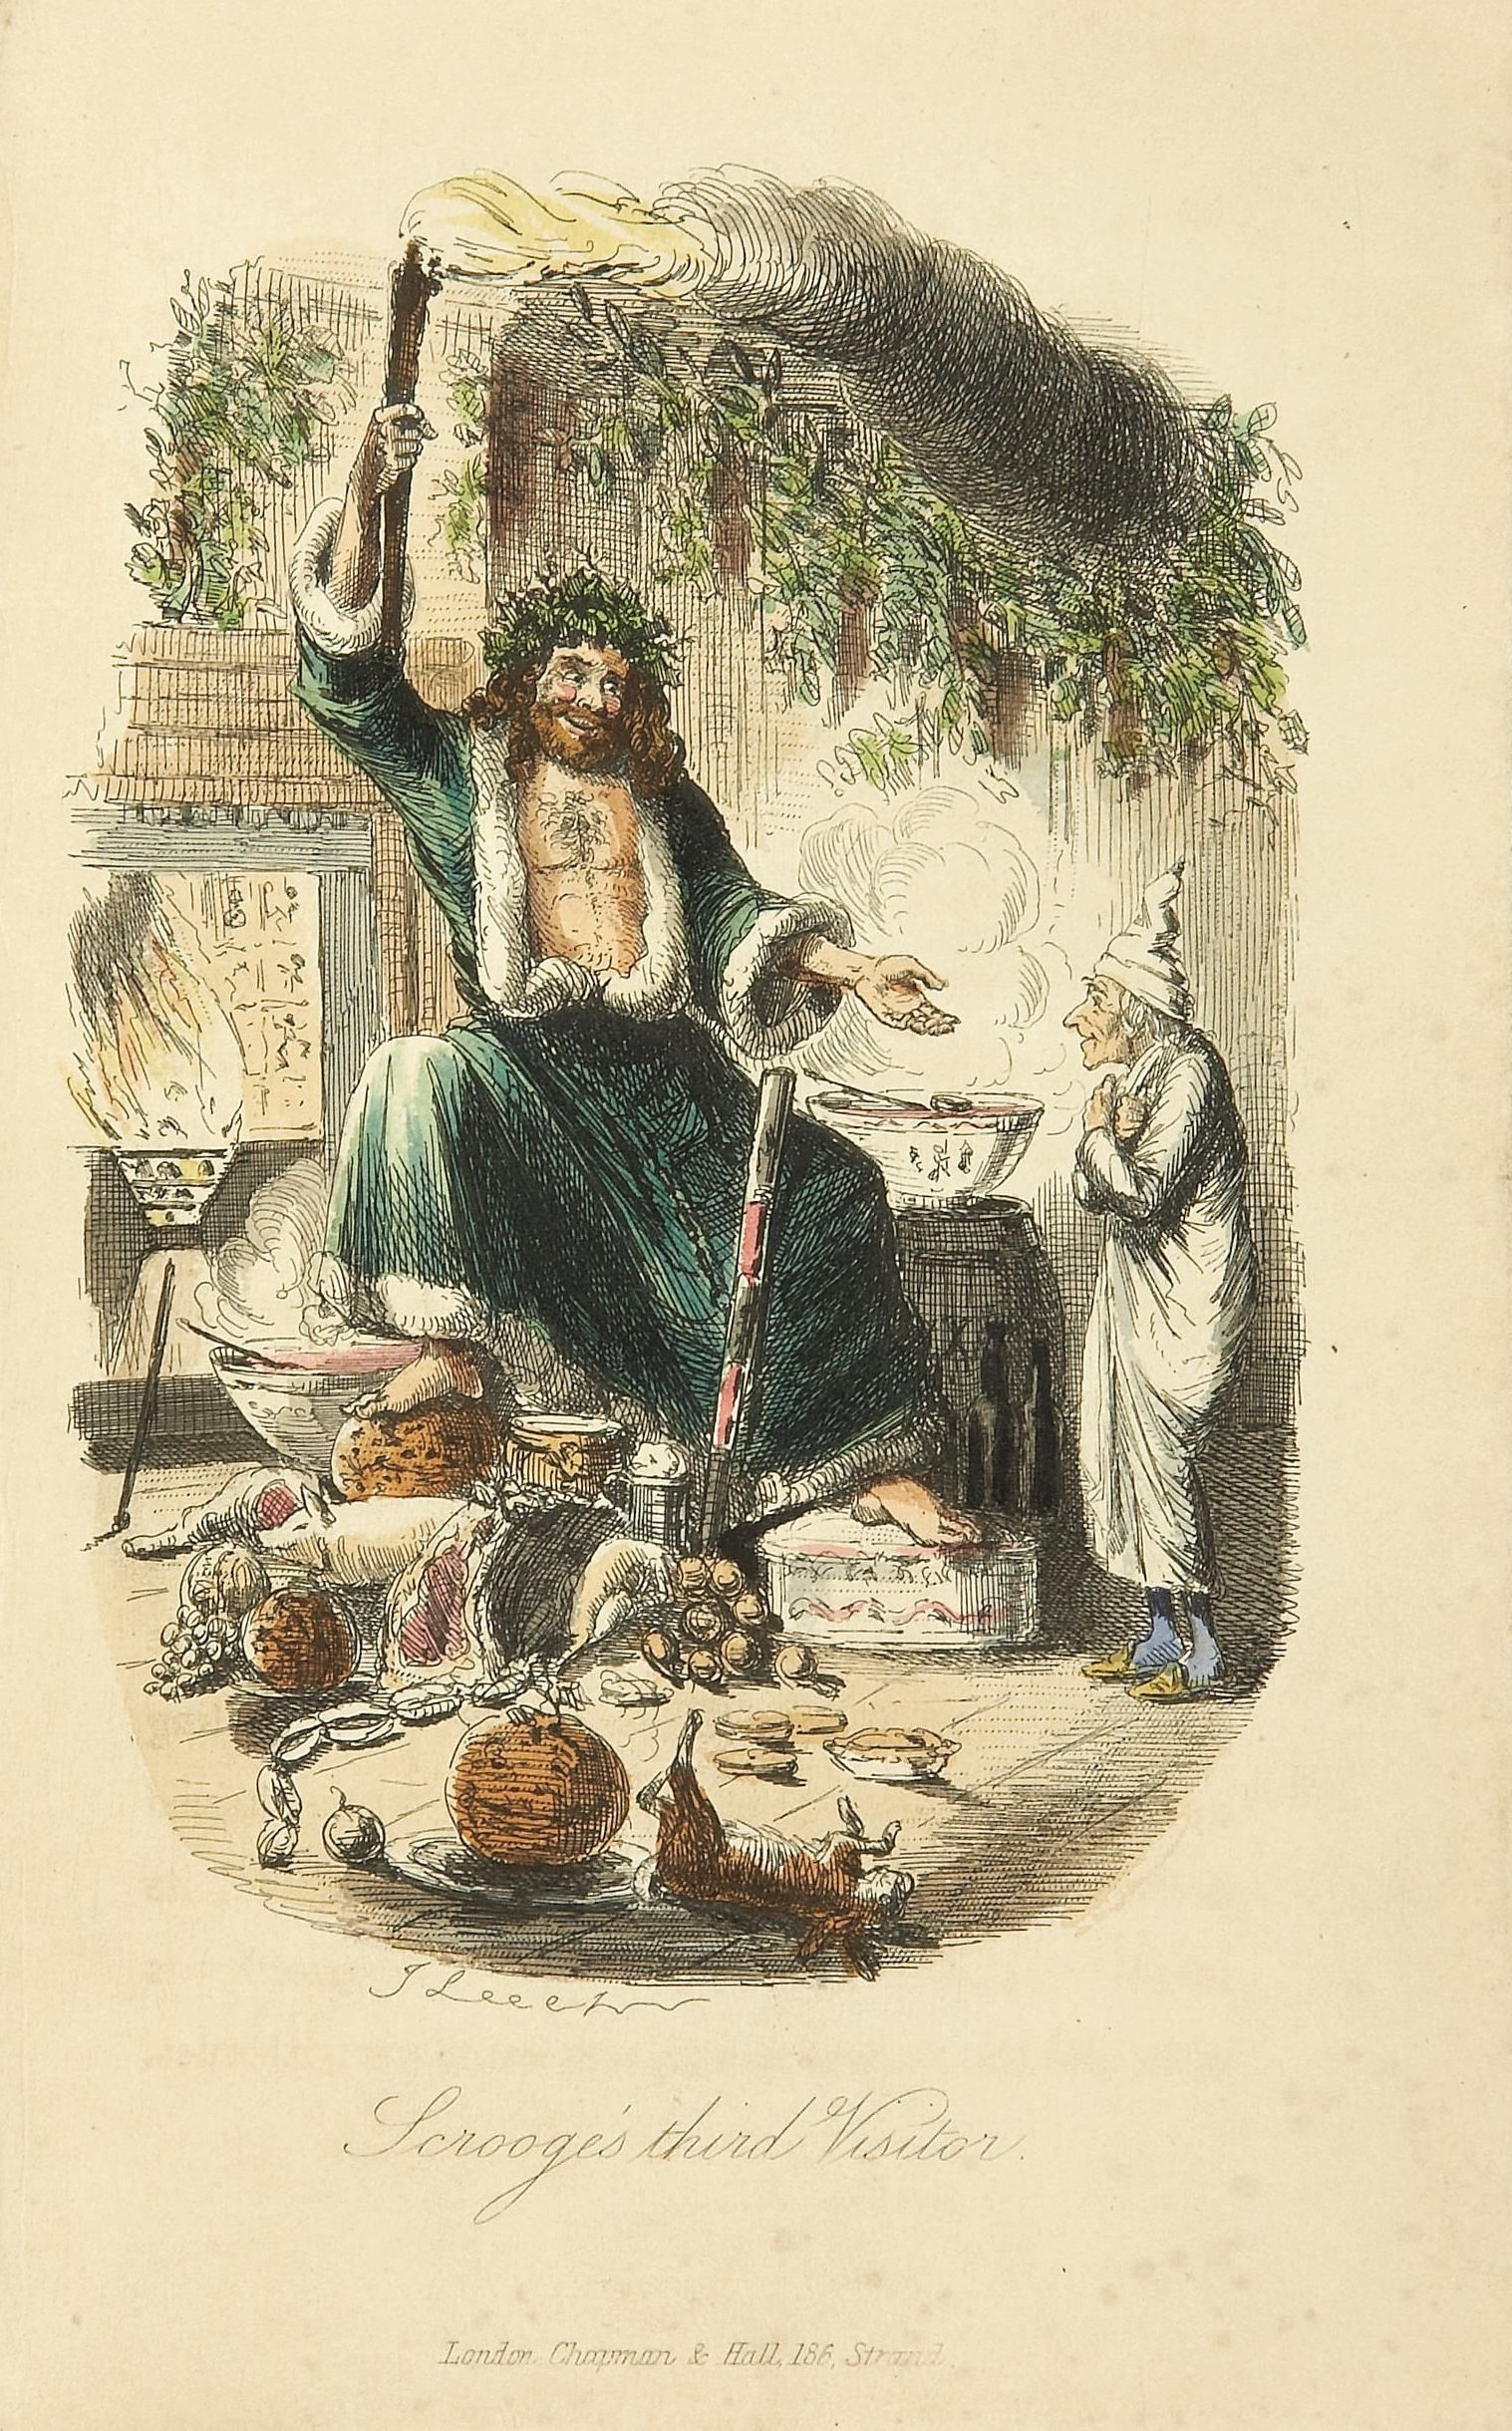 Pictured: Scrooge's third visitor, from Charles Dickens: A Christmas Carol. In Prose. Being a Ghost Story of Christmas. Illustrations by John Leech. London: Chapman & Hall, 1843. First edition. [CC BY-SA 3.0] via Wikimedia Commons.